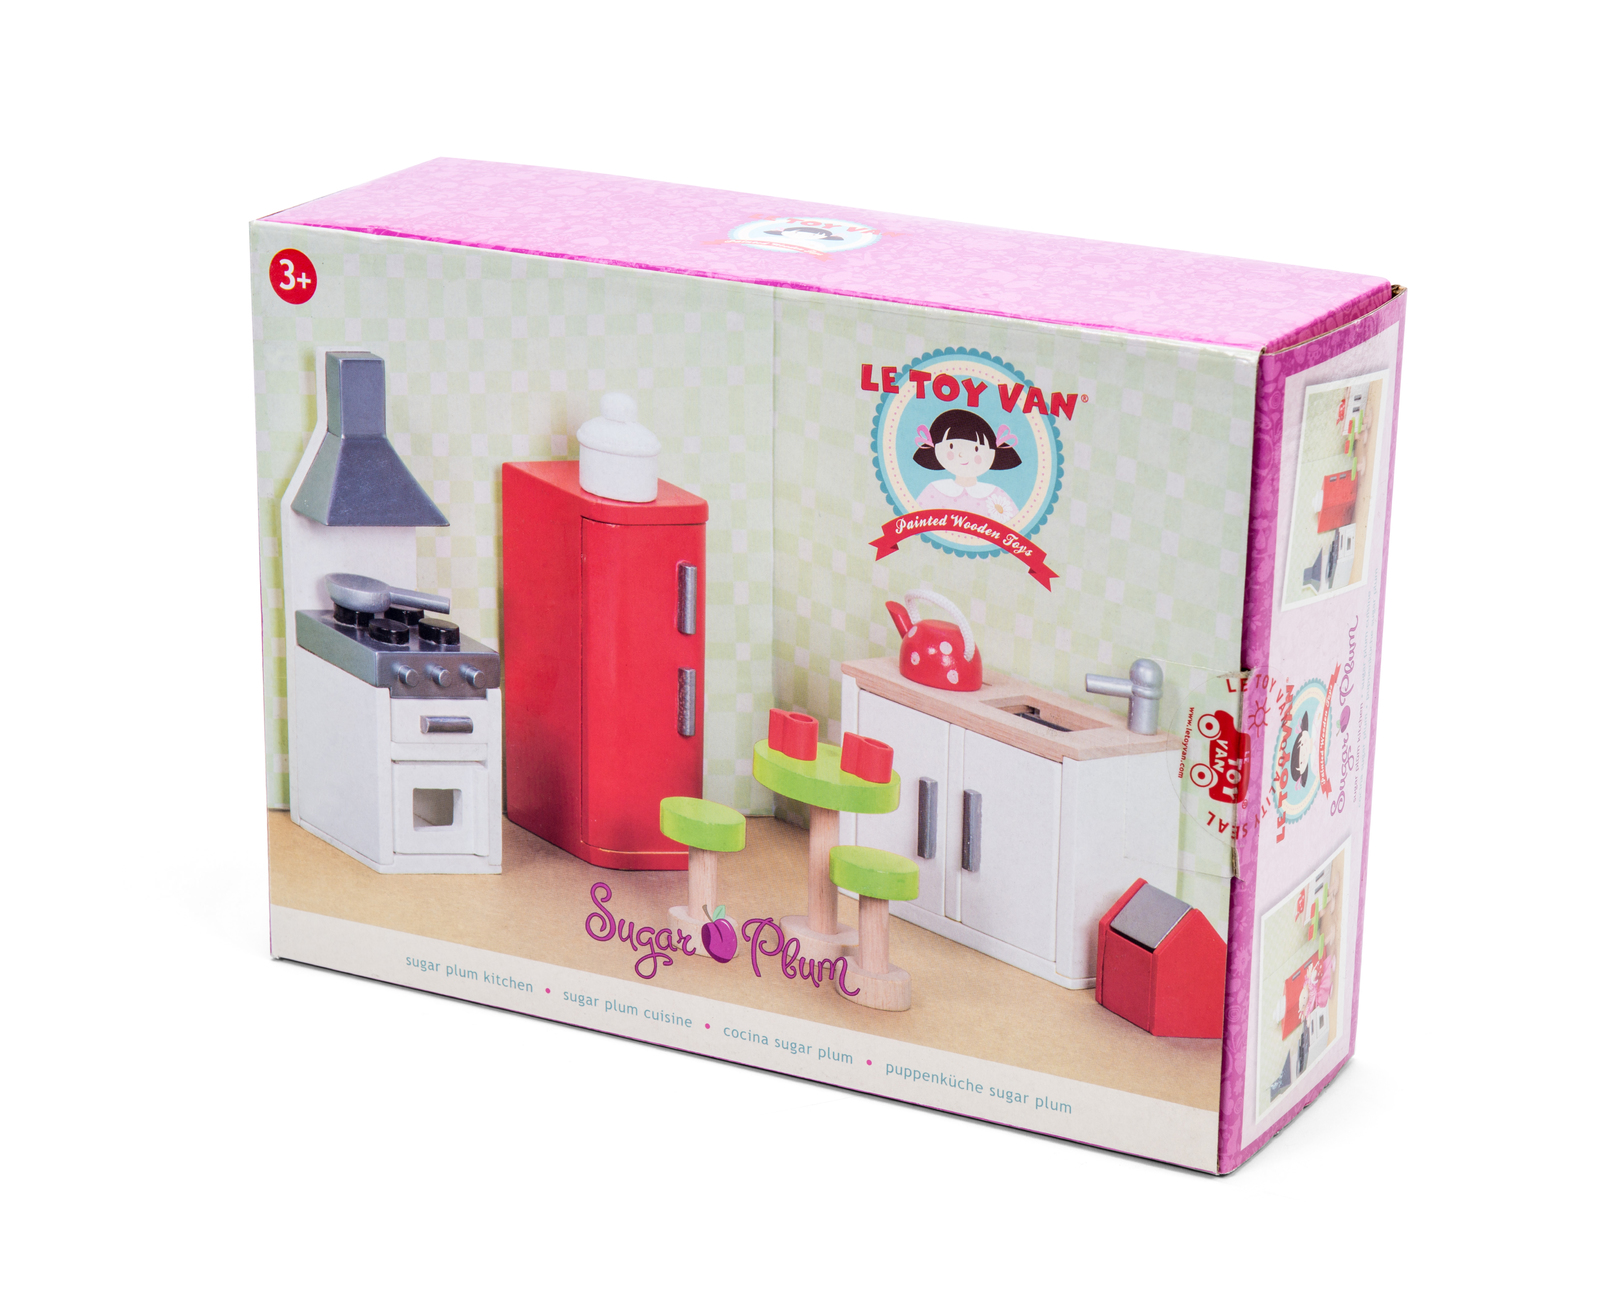 Le Toy Van: Sugar Plum Kitchen Furniture Set